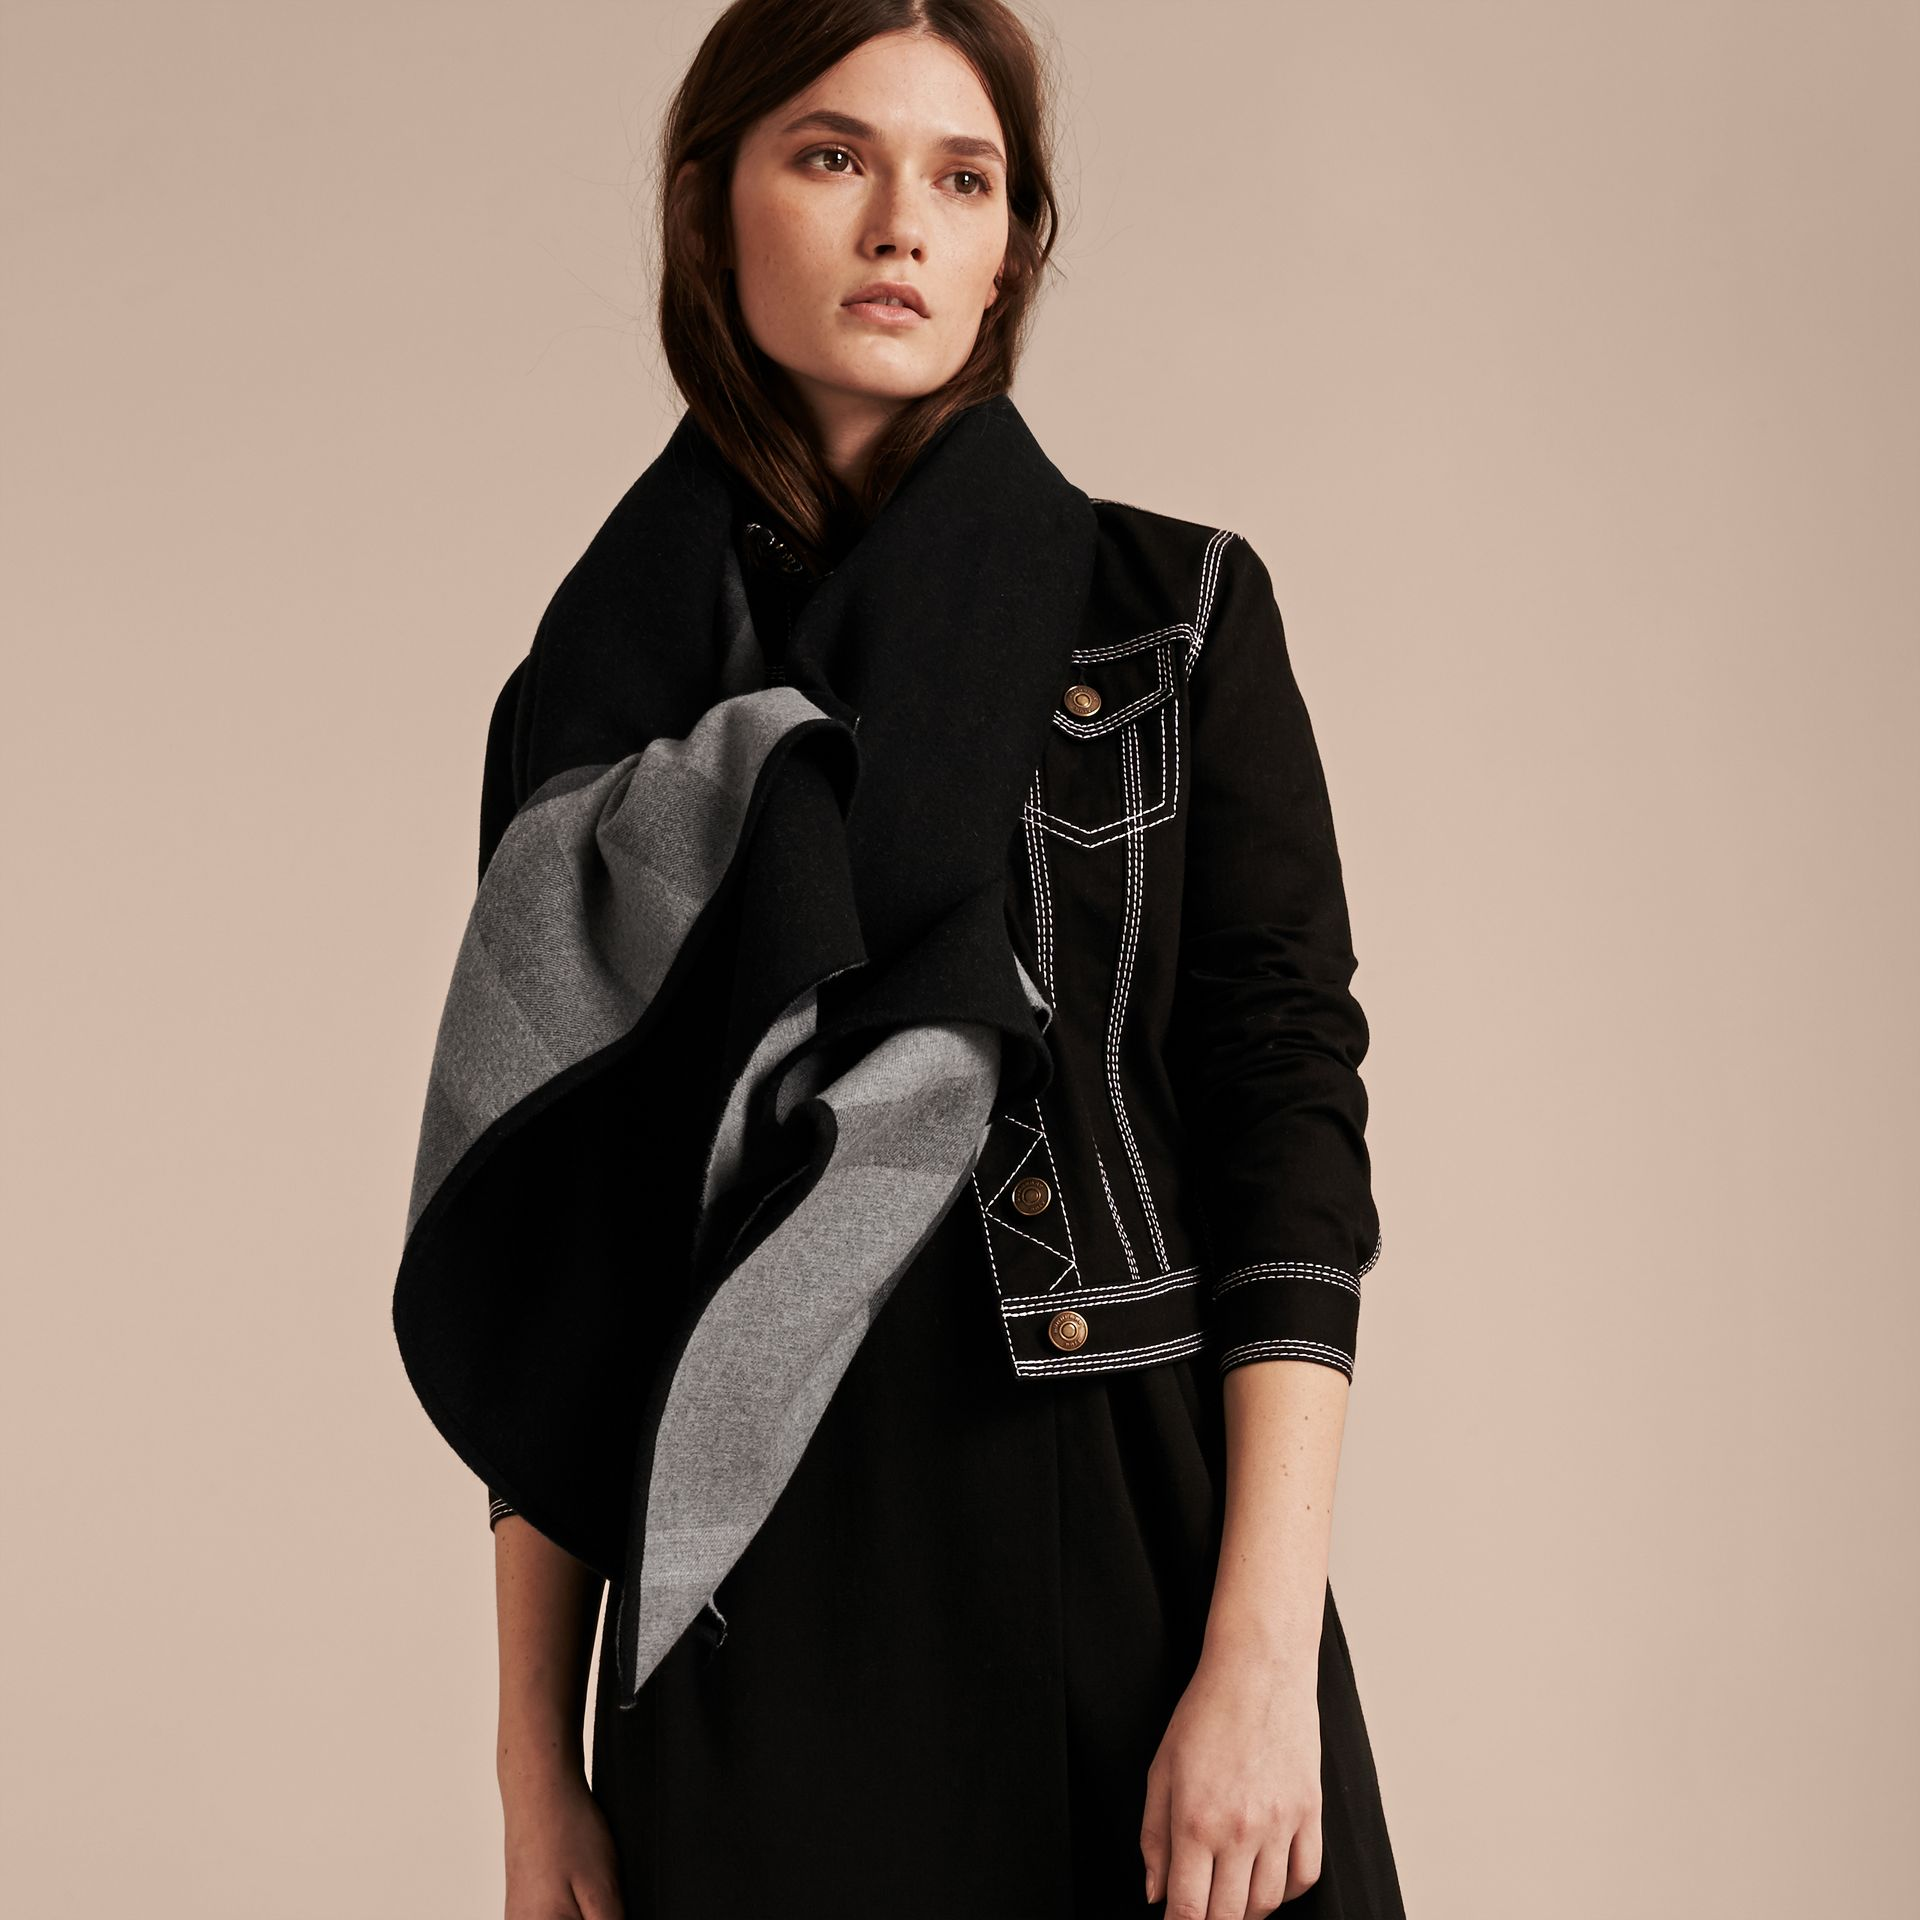 Check-Lined Wool Poncho in Charcoal - Women | Burberry - gallery image 2